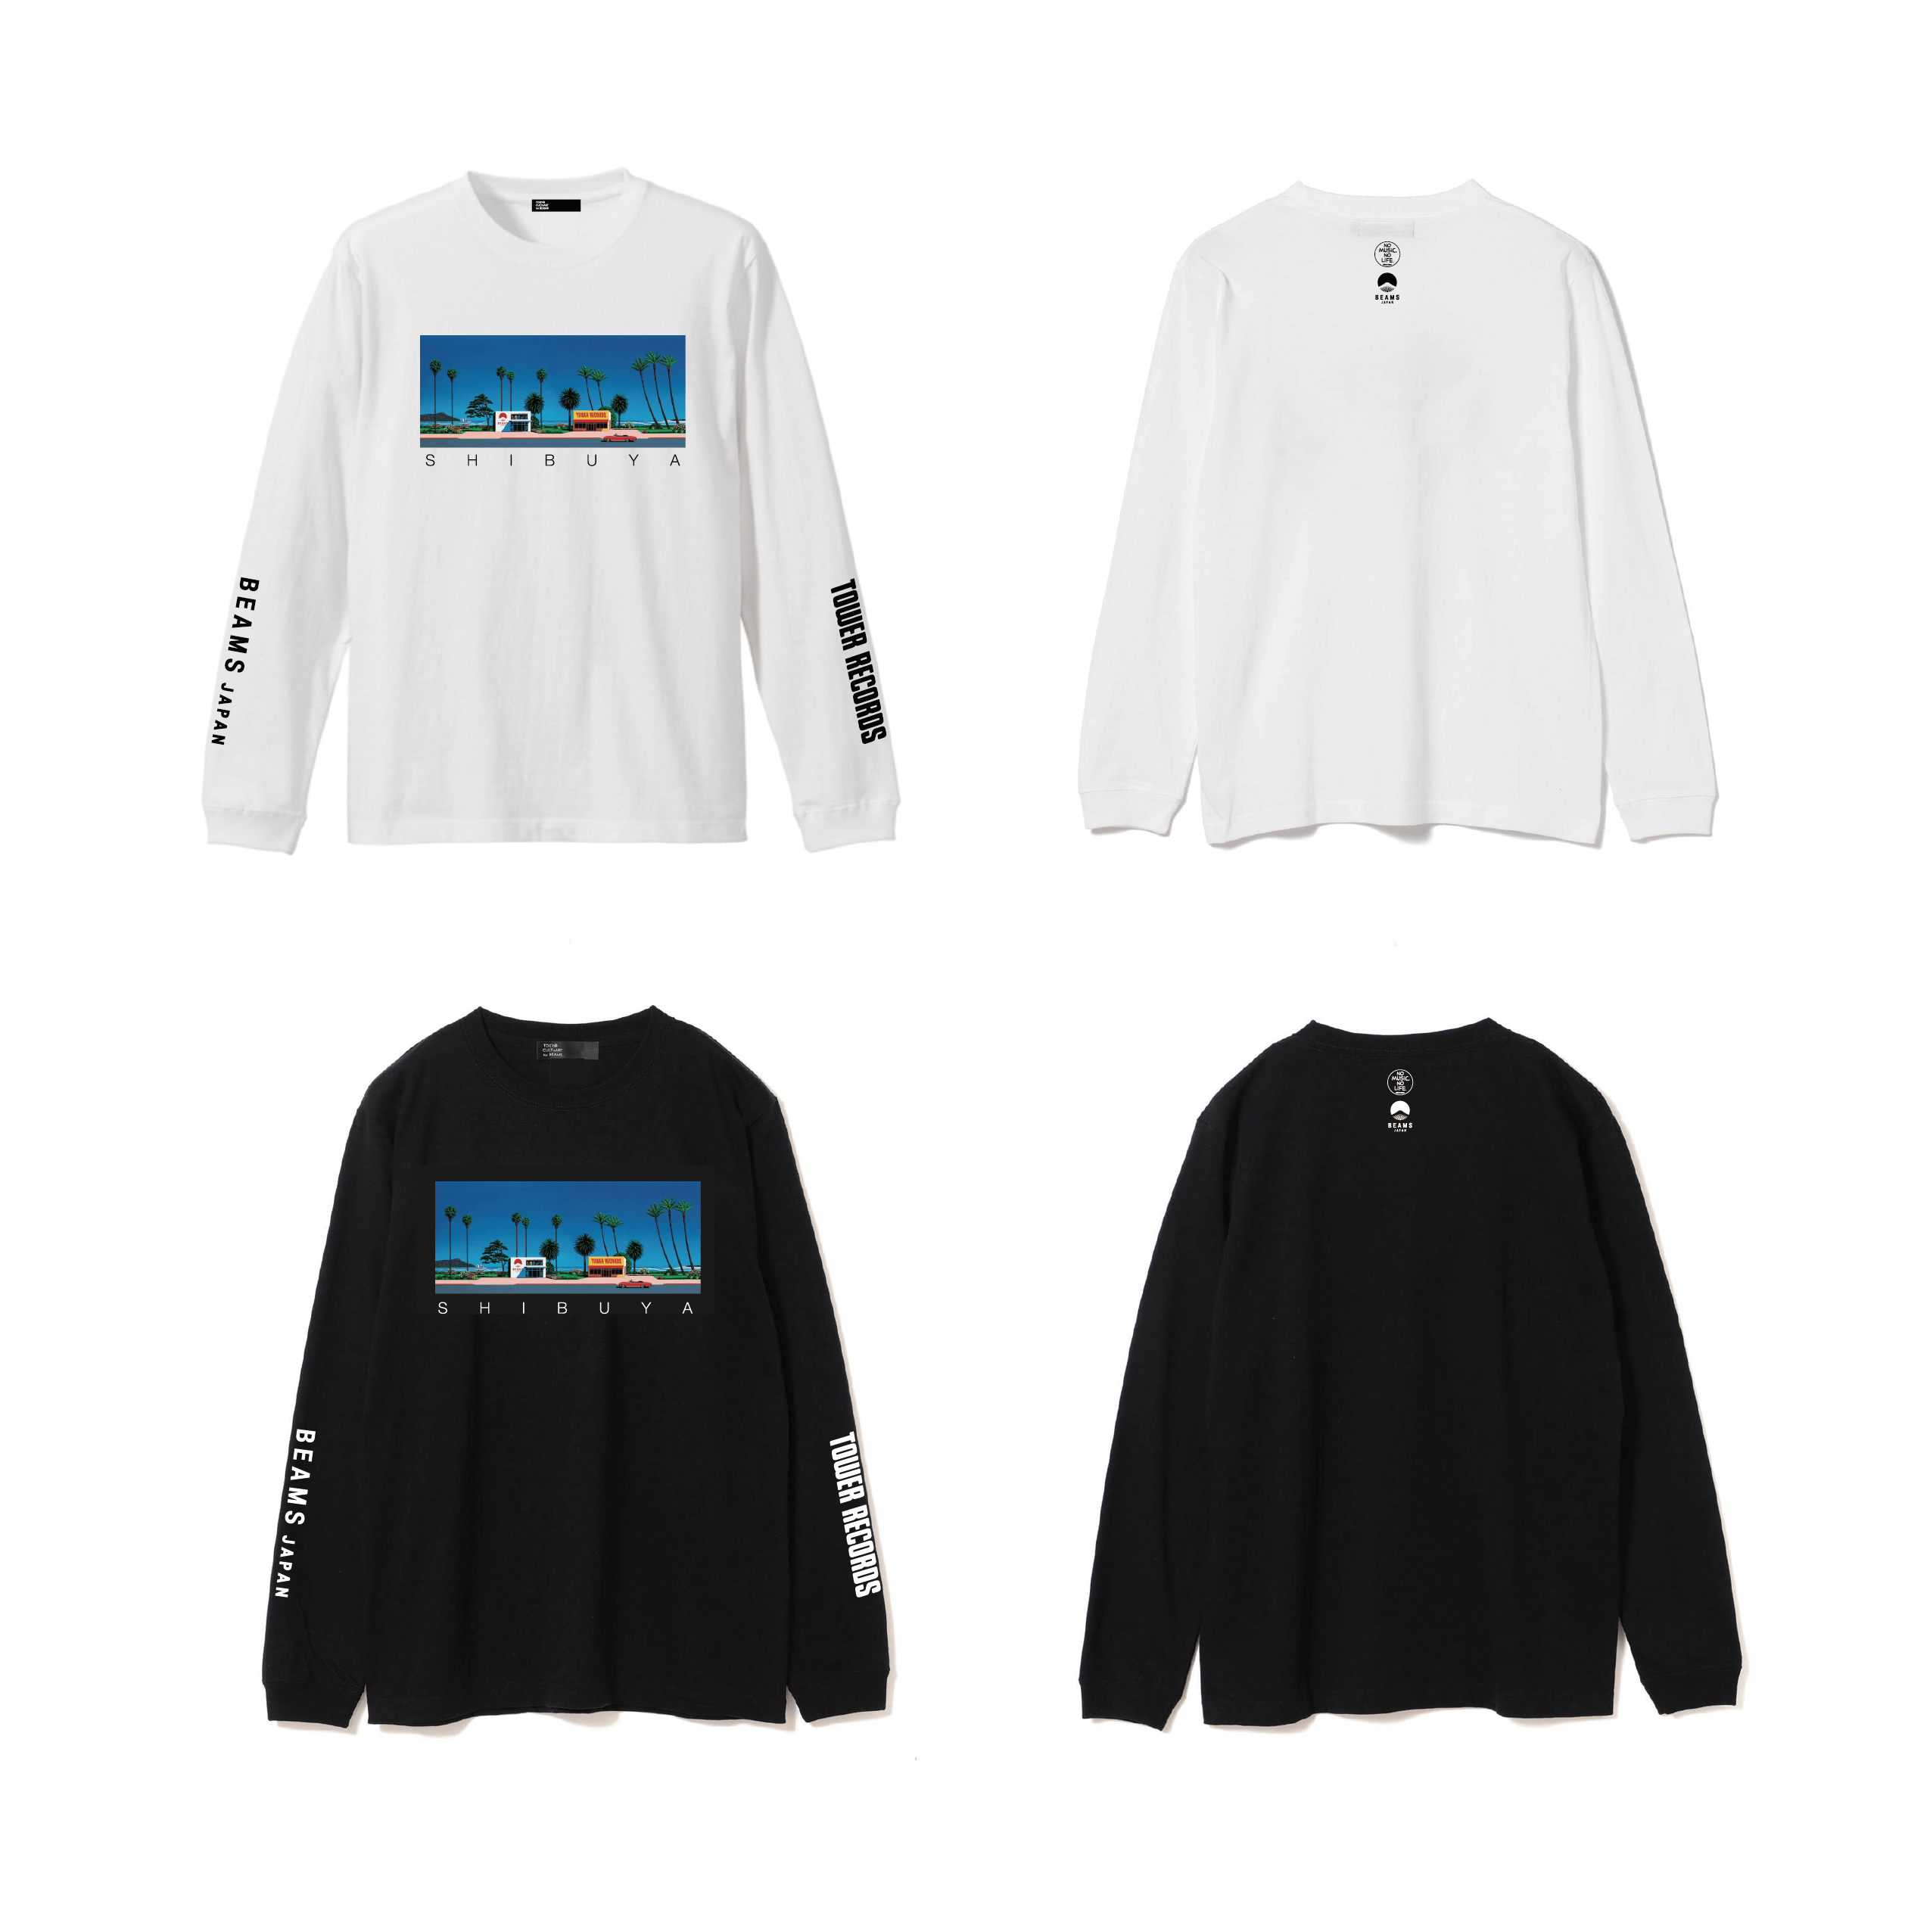 BEAMS JAPAN SHIBUYA×TOWER RECORDS Tシャツ T-Shirts